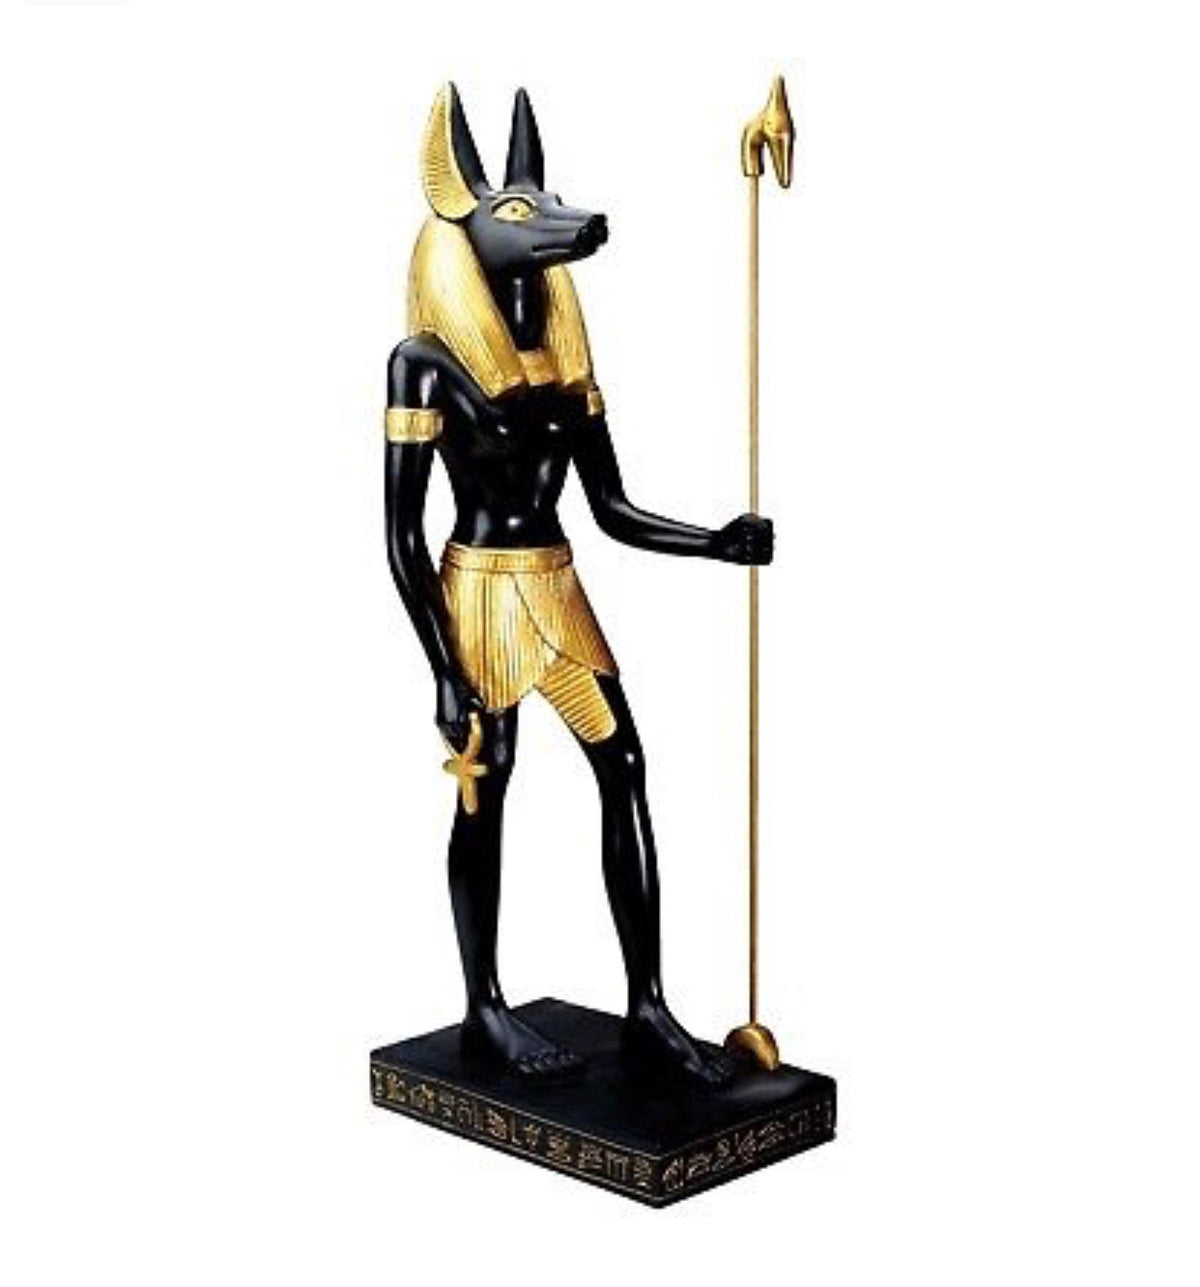 Egyptian Anubis Pharaohs Centerpiece